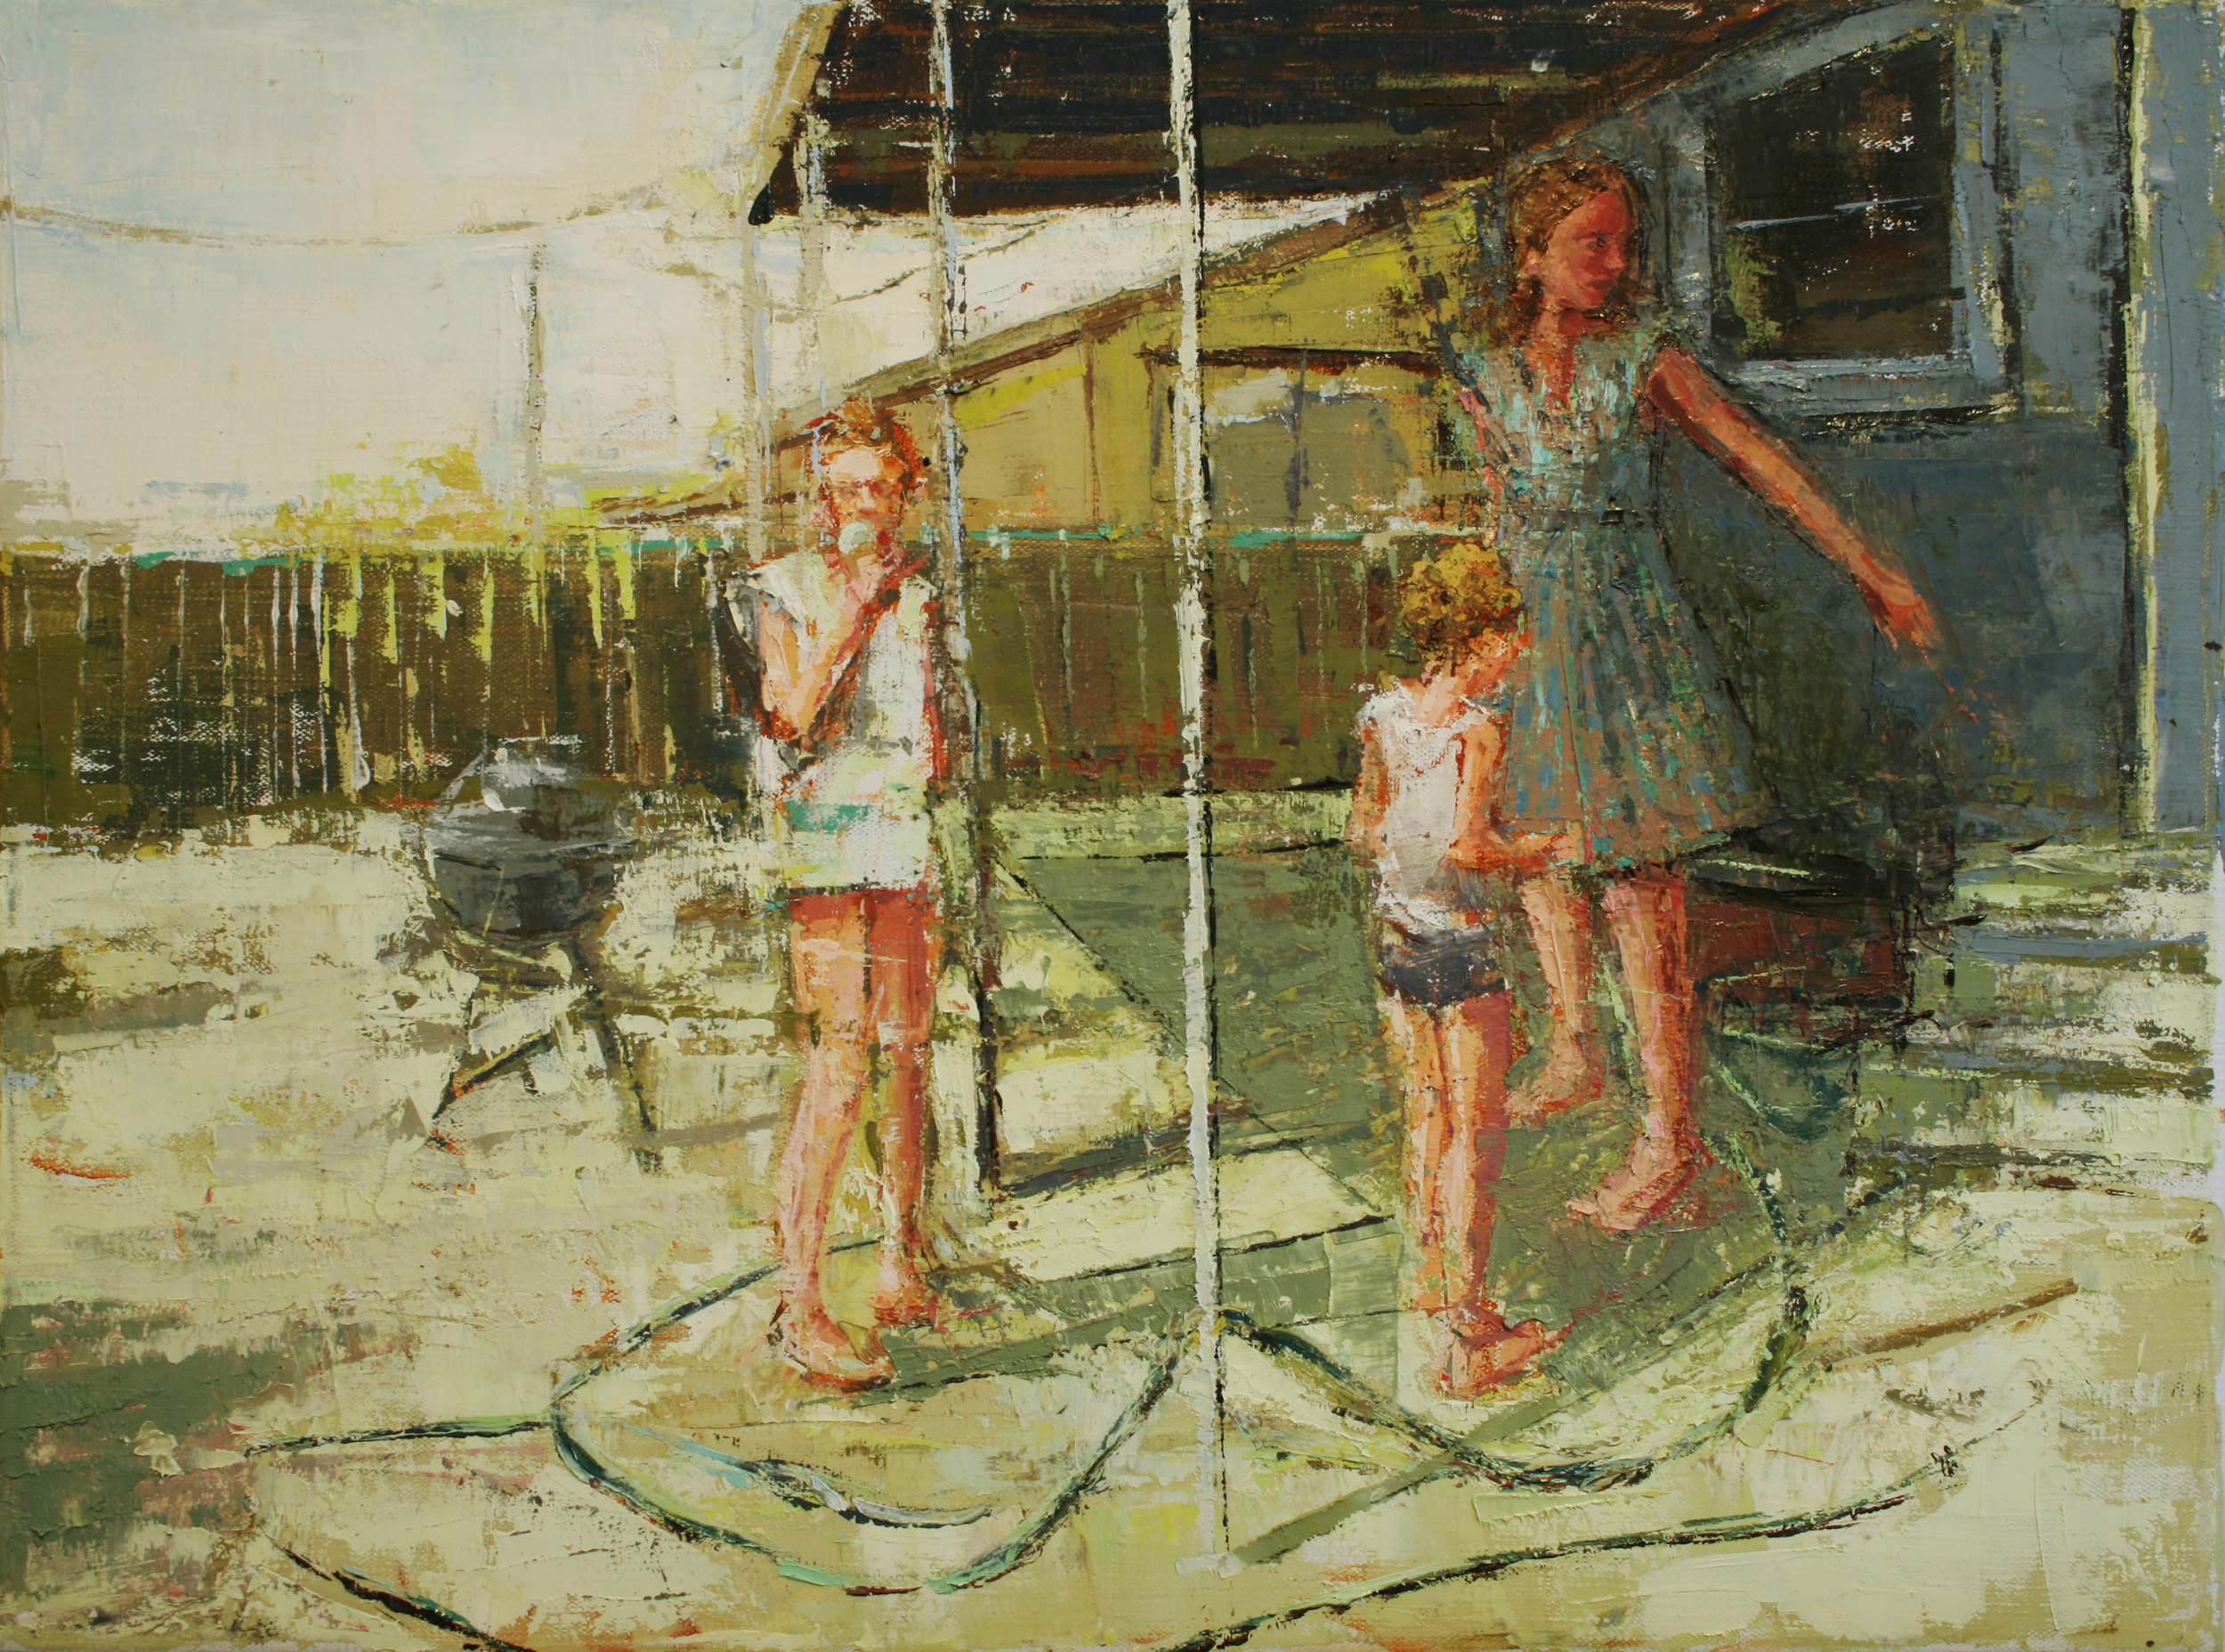 """Garden Hose, oil on linen, 12"""" x 16"""", 2010, Private Collection"""